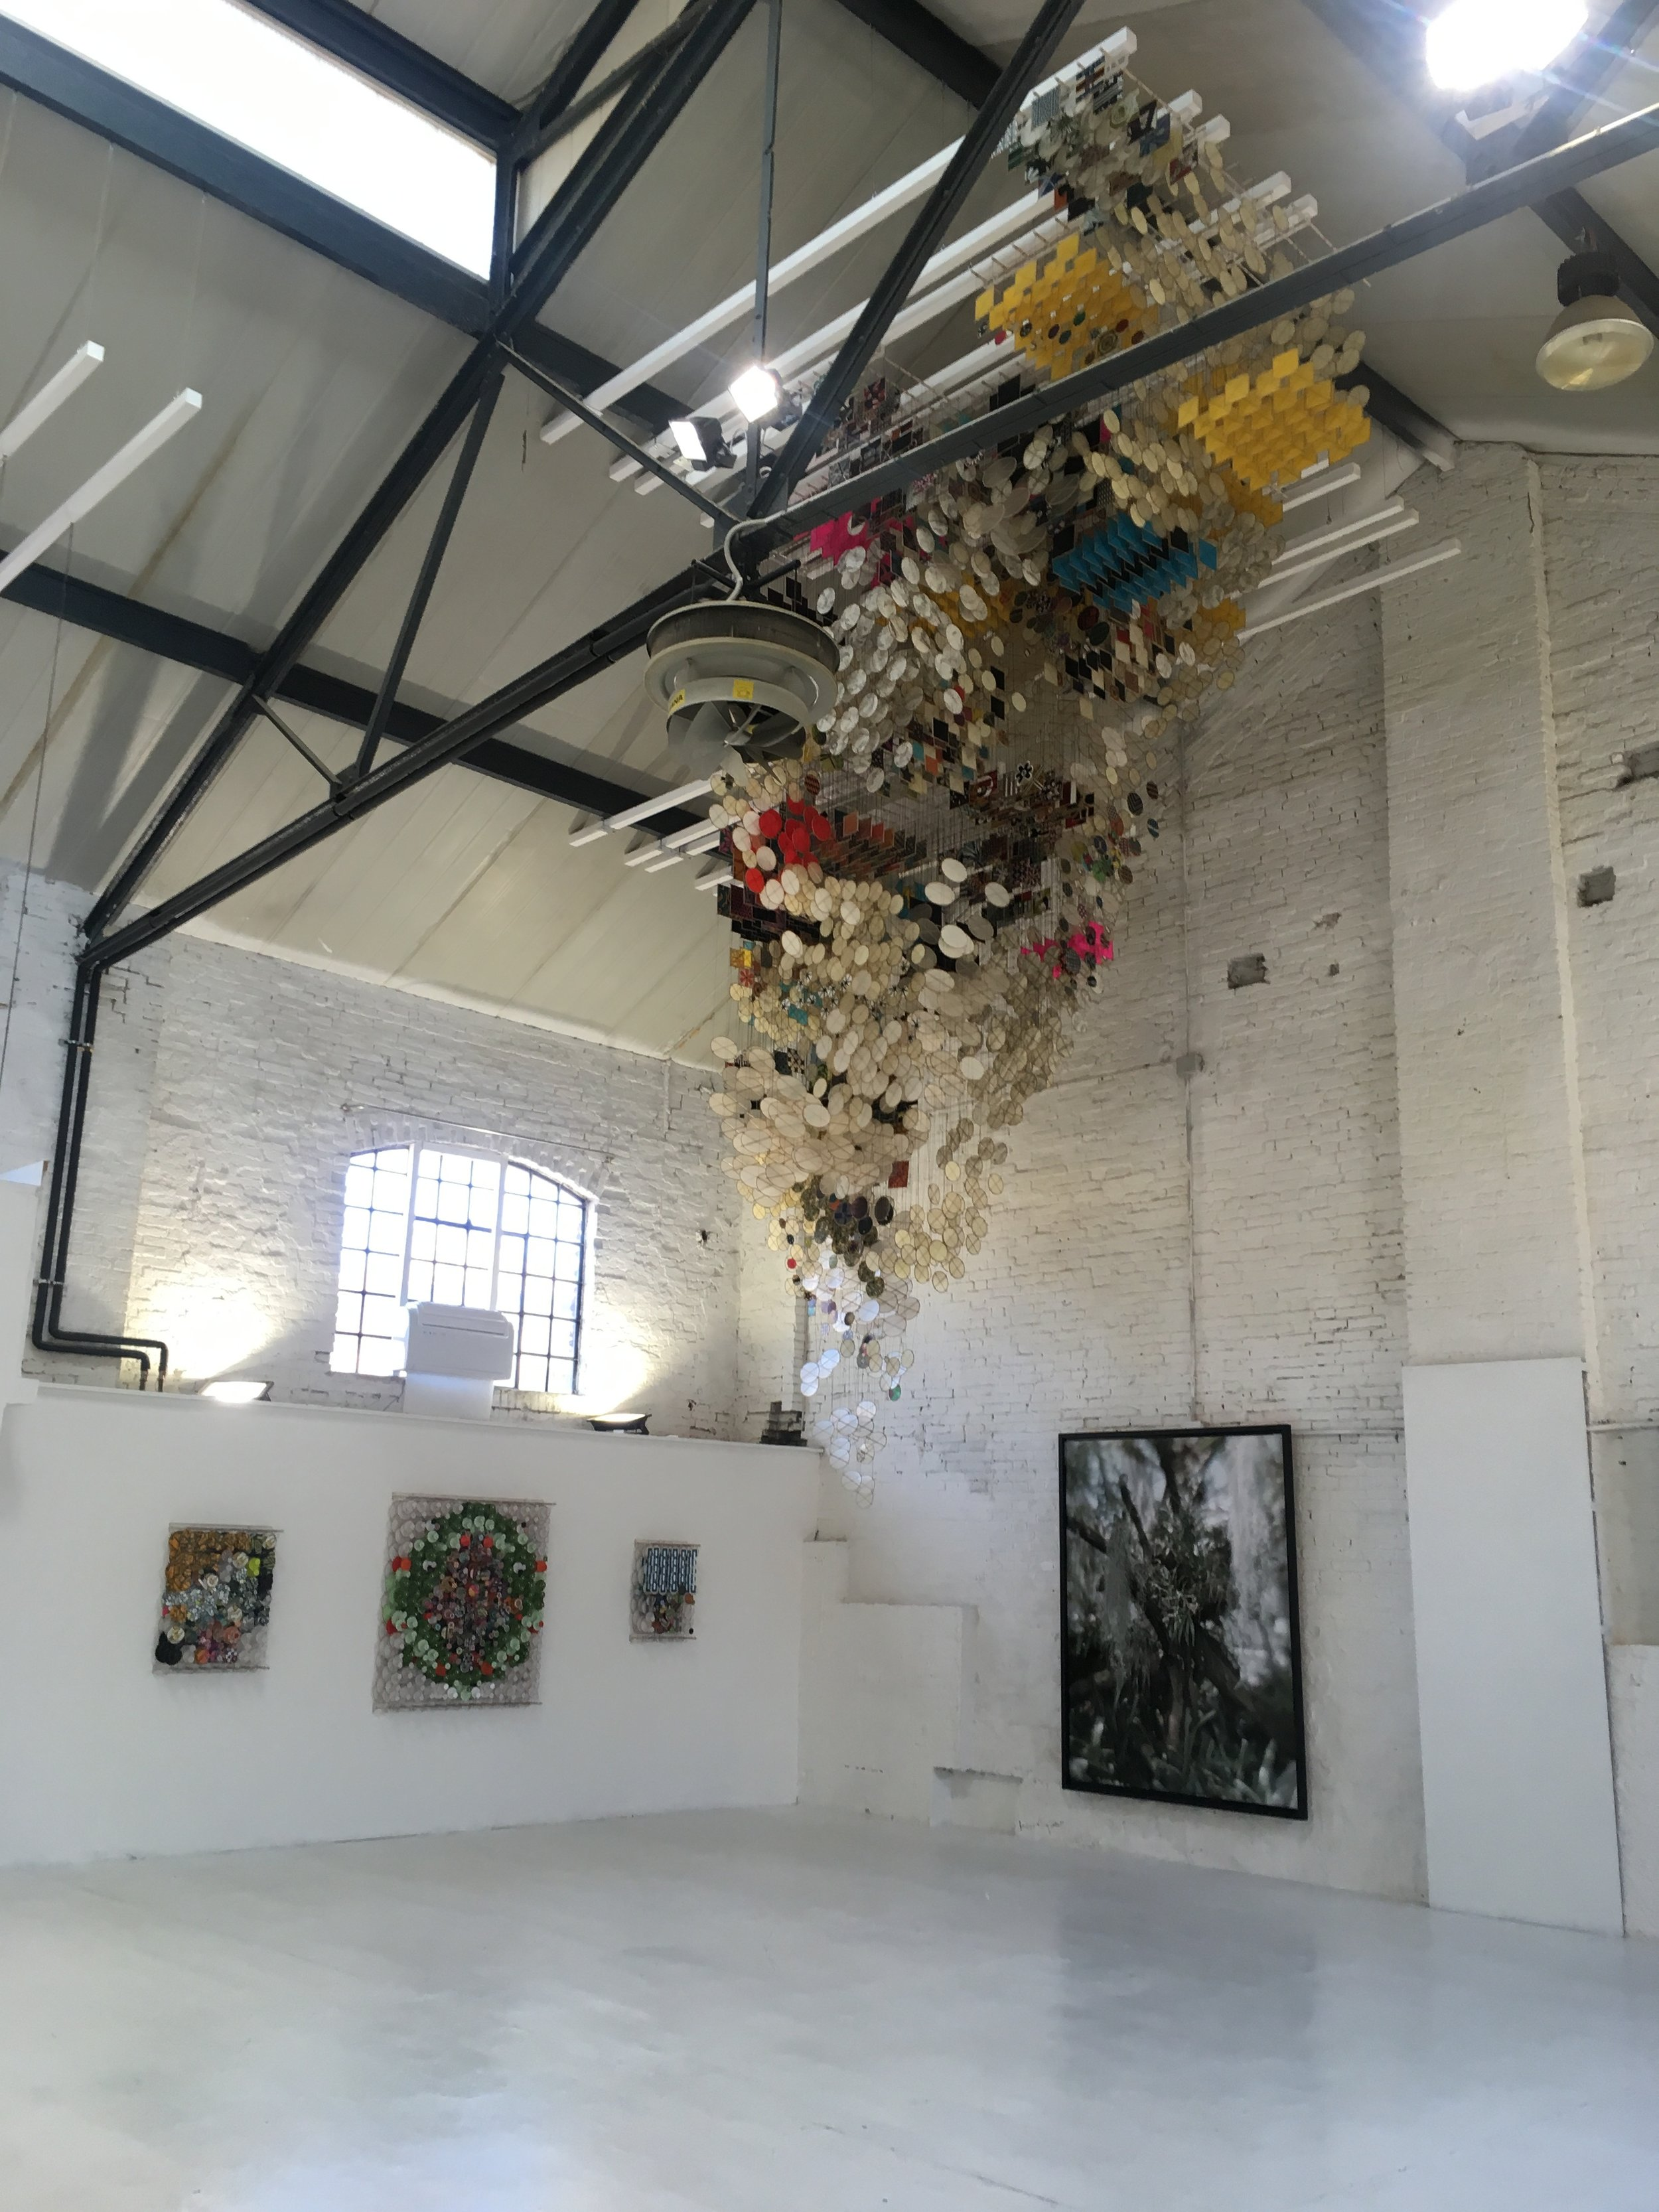 After Turner exhibition at Giudecca Art District. Art installation by Jacob Hashimoto